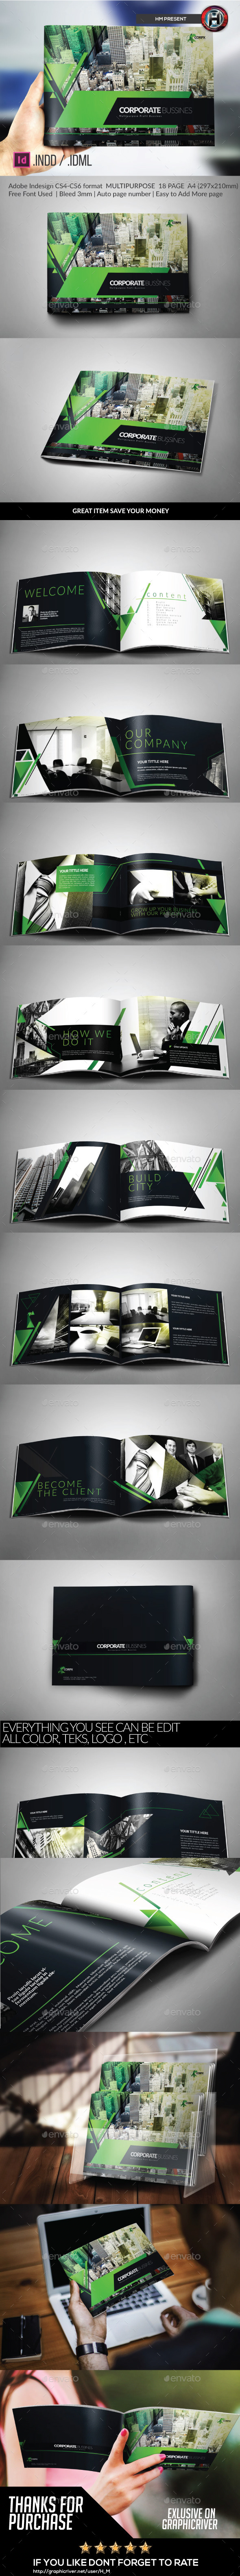 GraphicRiver Multipurpose Modern Corporate Geometris Brochure 10087586